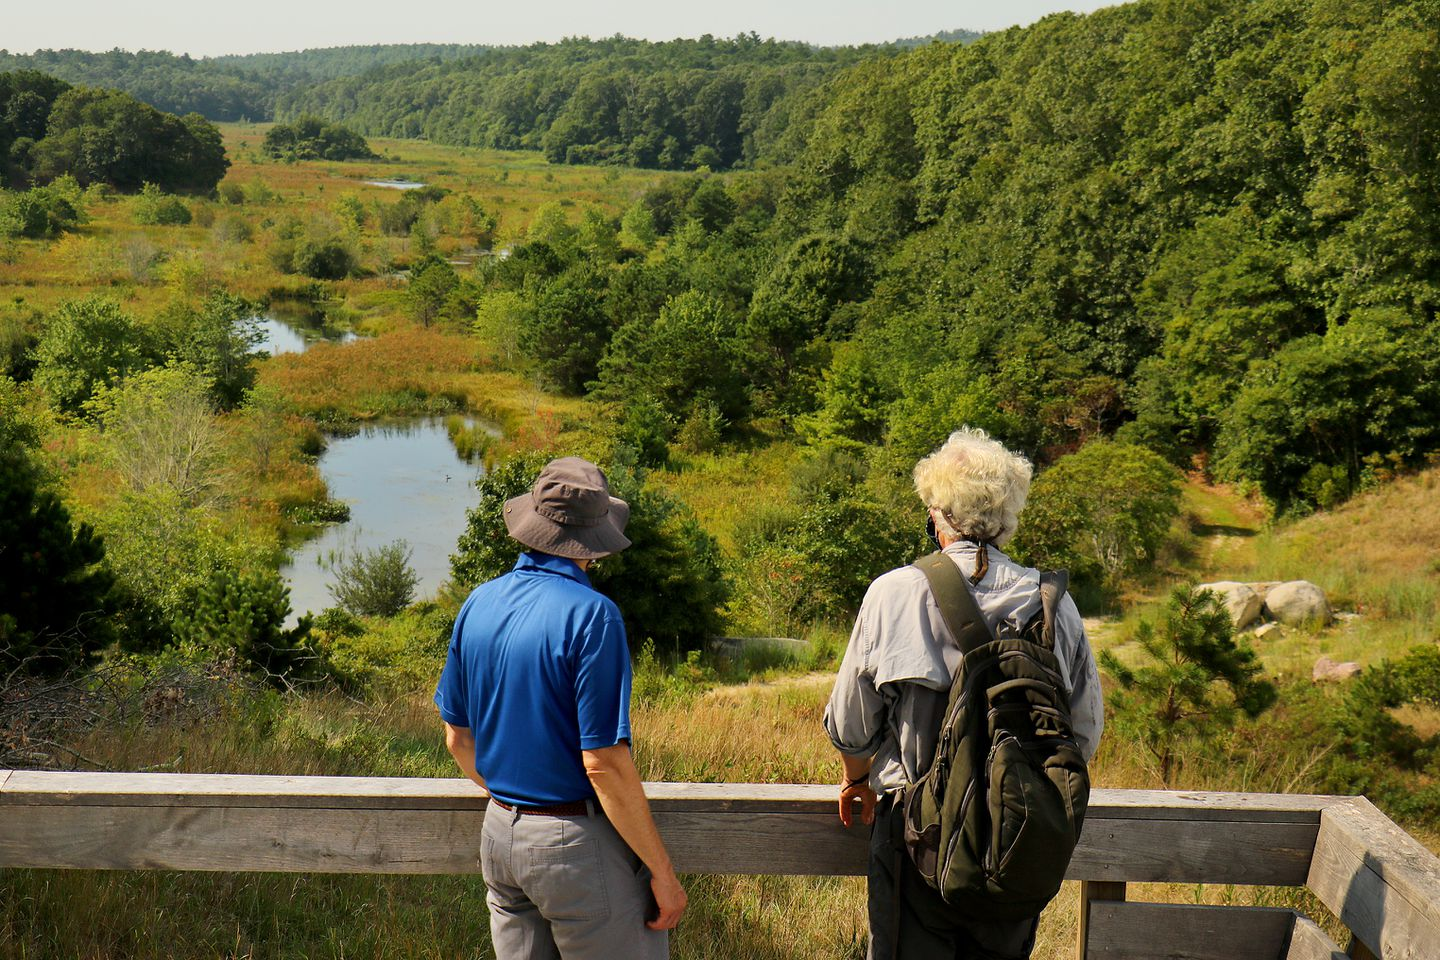 The view from a lookout of the former Tidmarsh cranberry bog, which is now a Mass Audubon Wildlife Sanctuary.